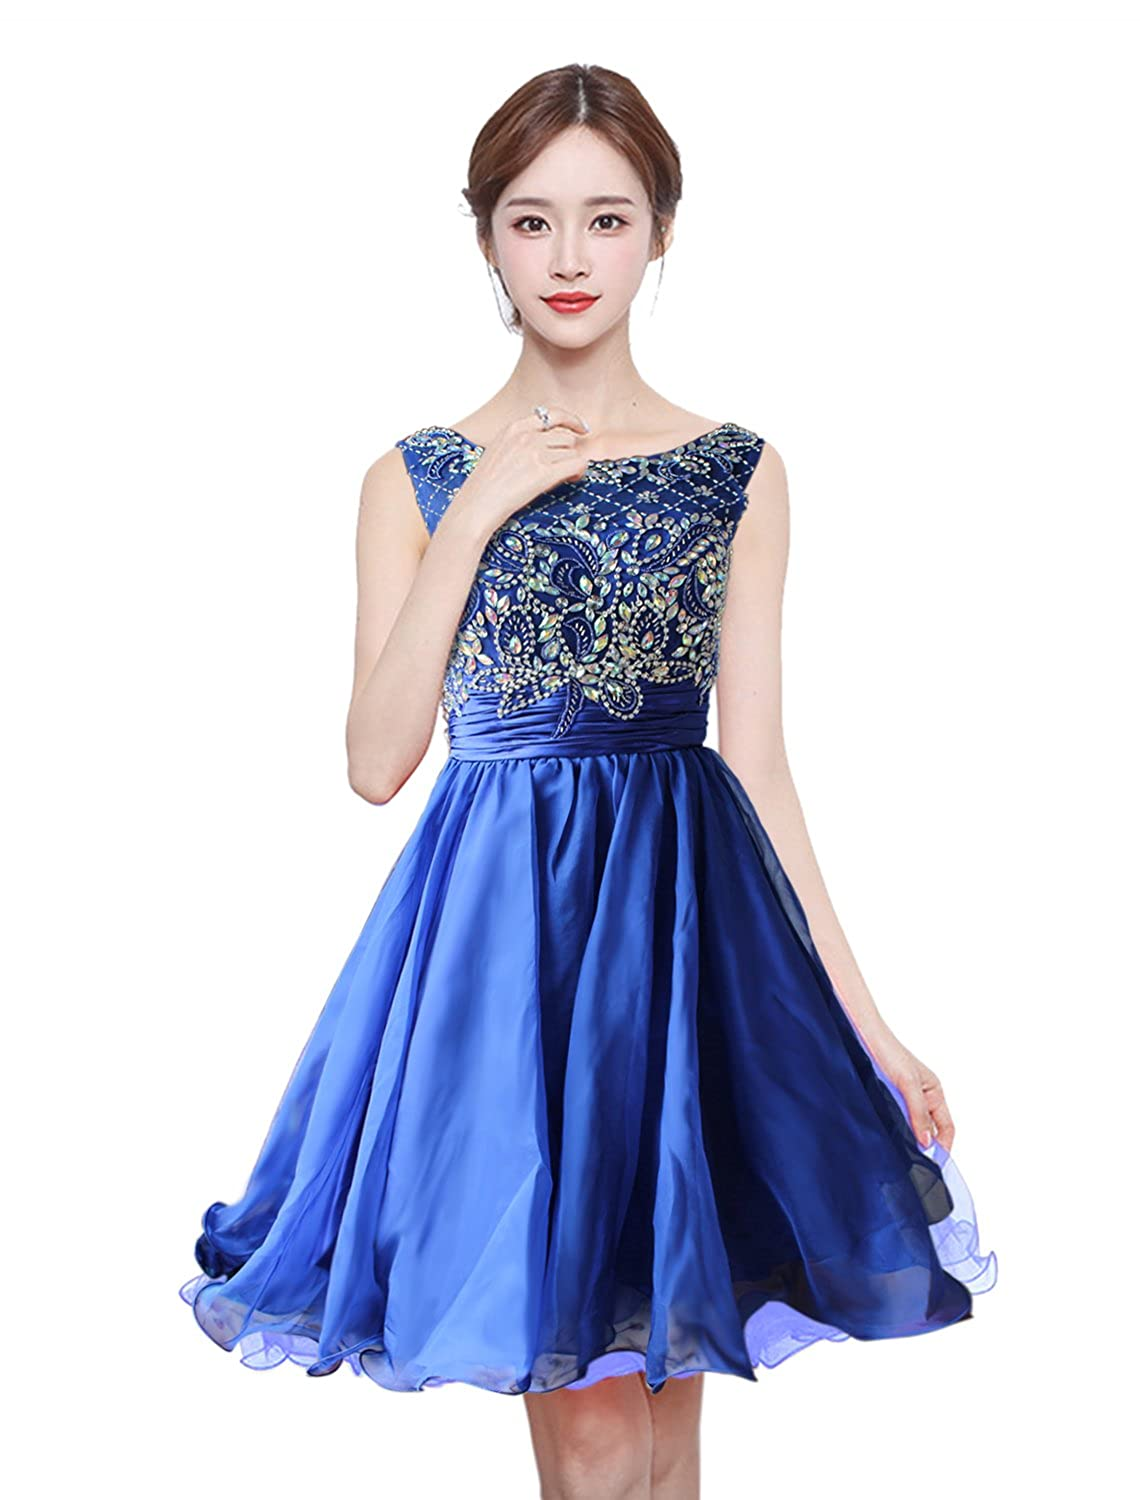 superior performance purchase newest terrific value Anlin Short Prom Dresses Open Back Sequins Homecoming Dresses